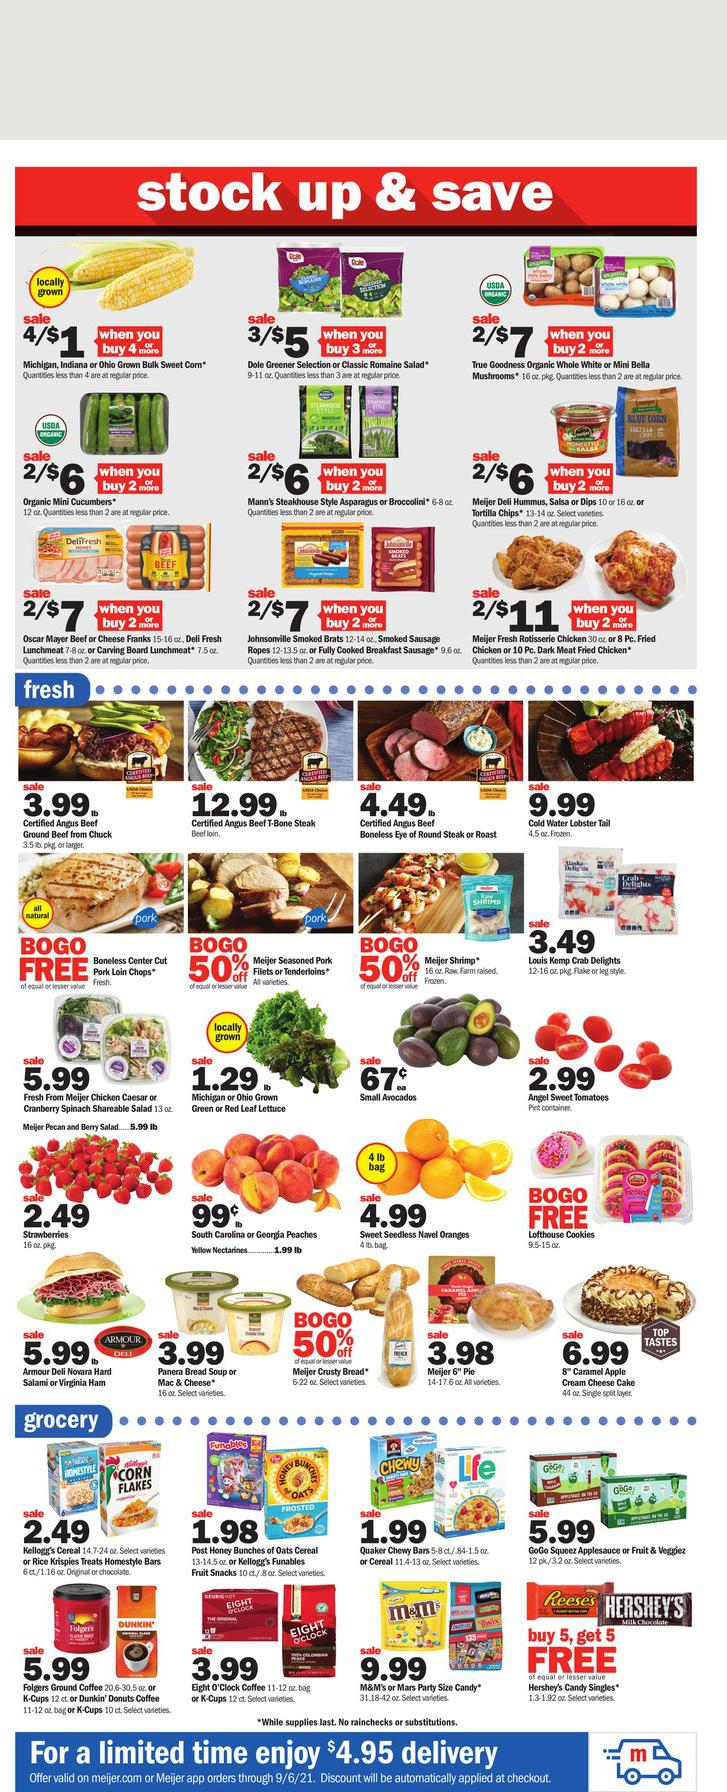 01.08.2021 Meijer ad 2. page